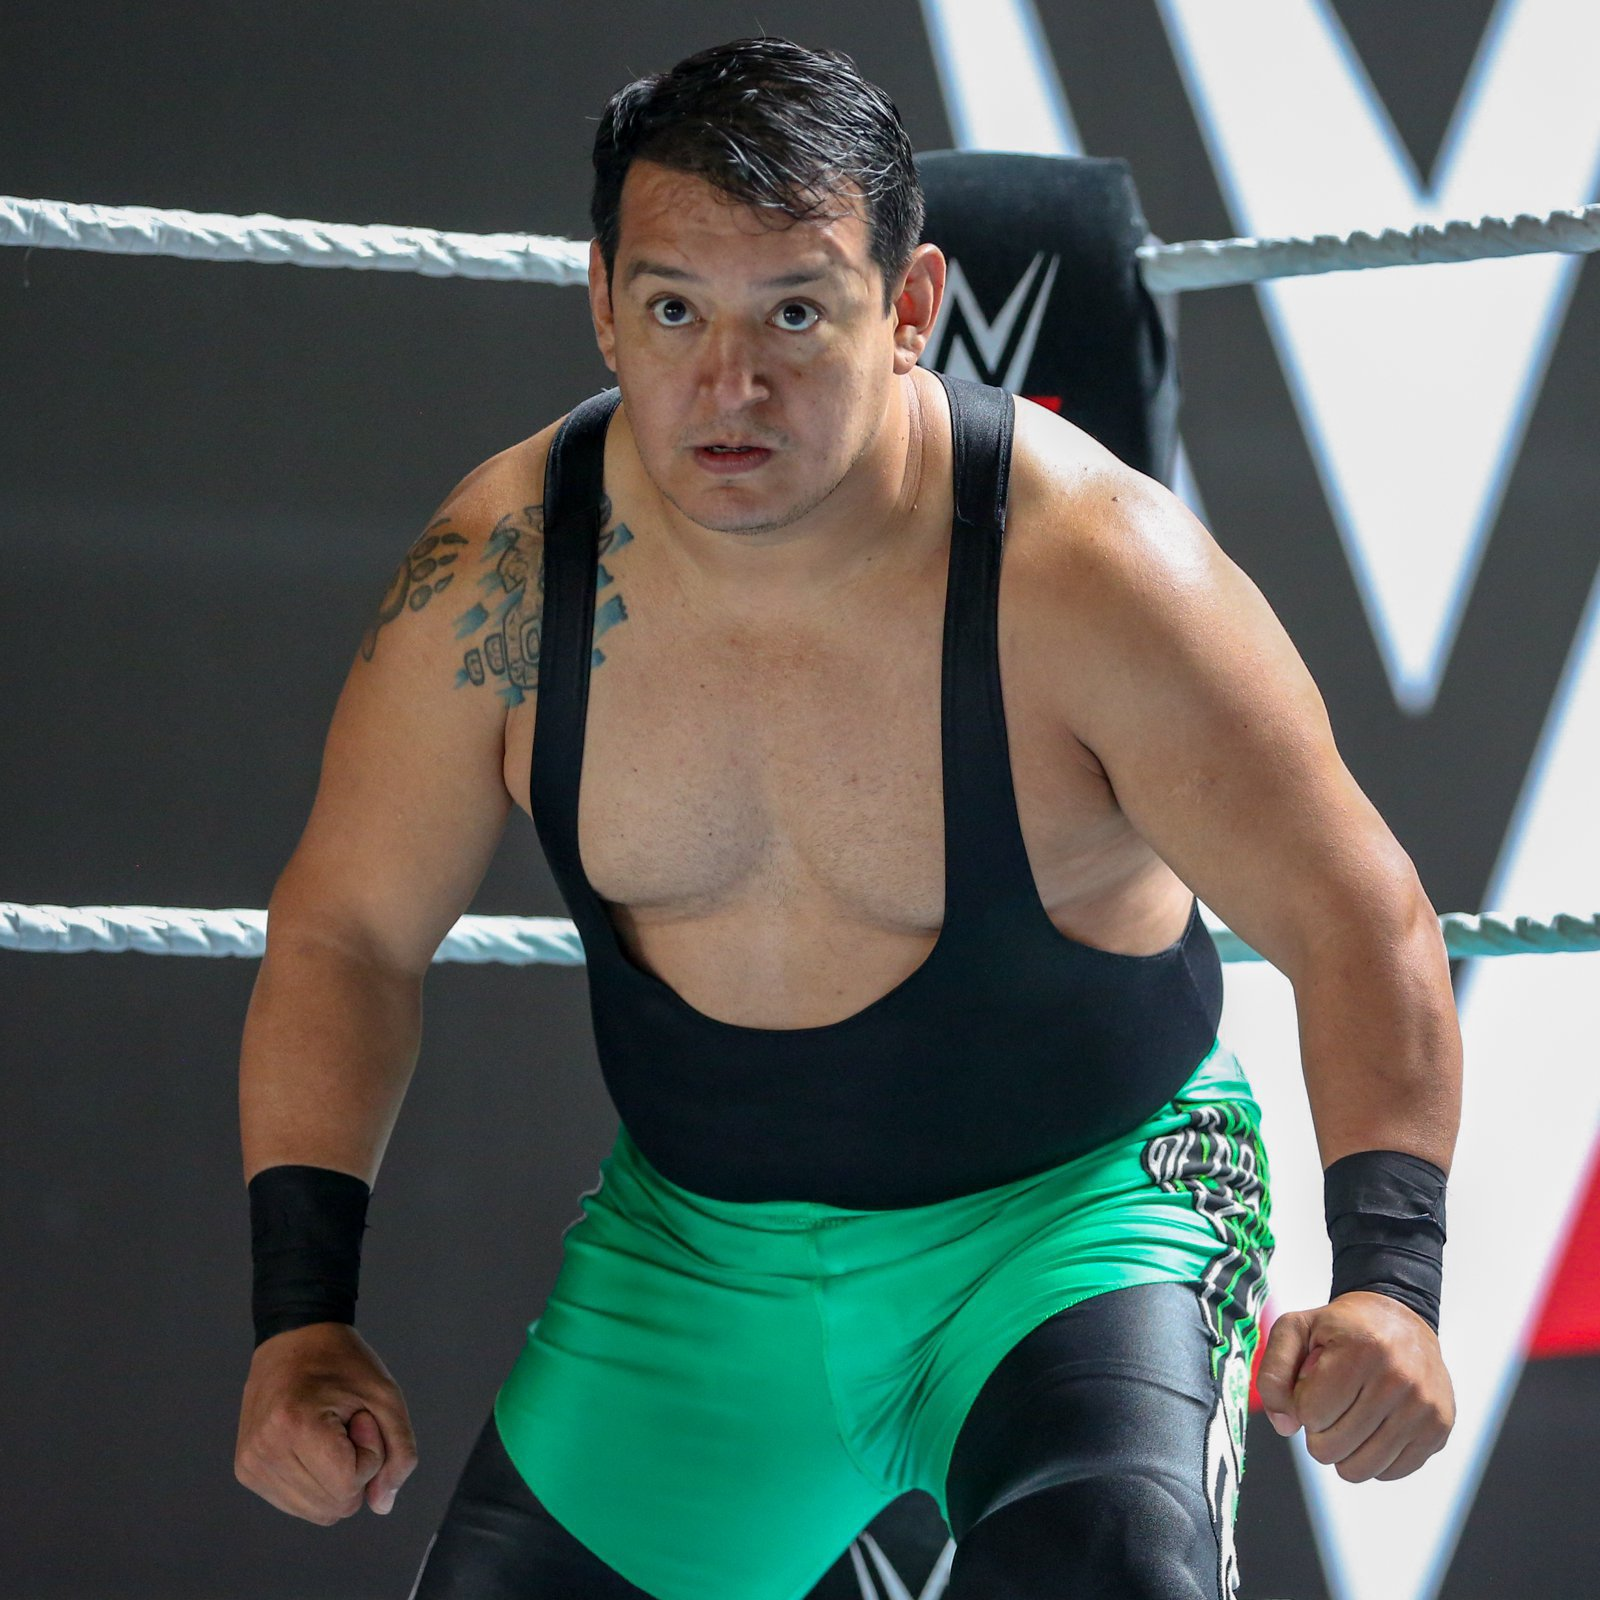 Ricky Marvin has won wrestling titles throughout the world, but perhaps no moment in his prestigious career carries the same importance as this WWE tryout.